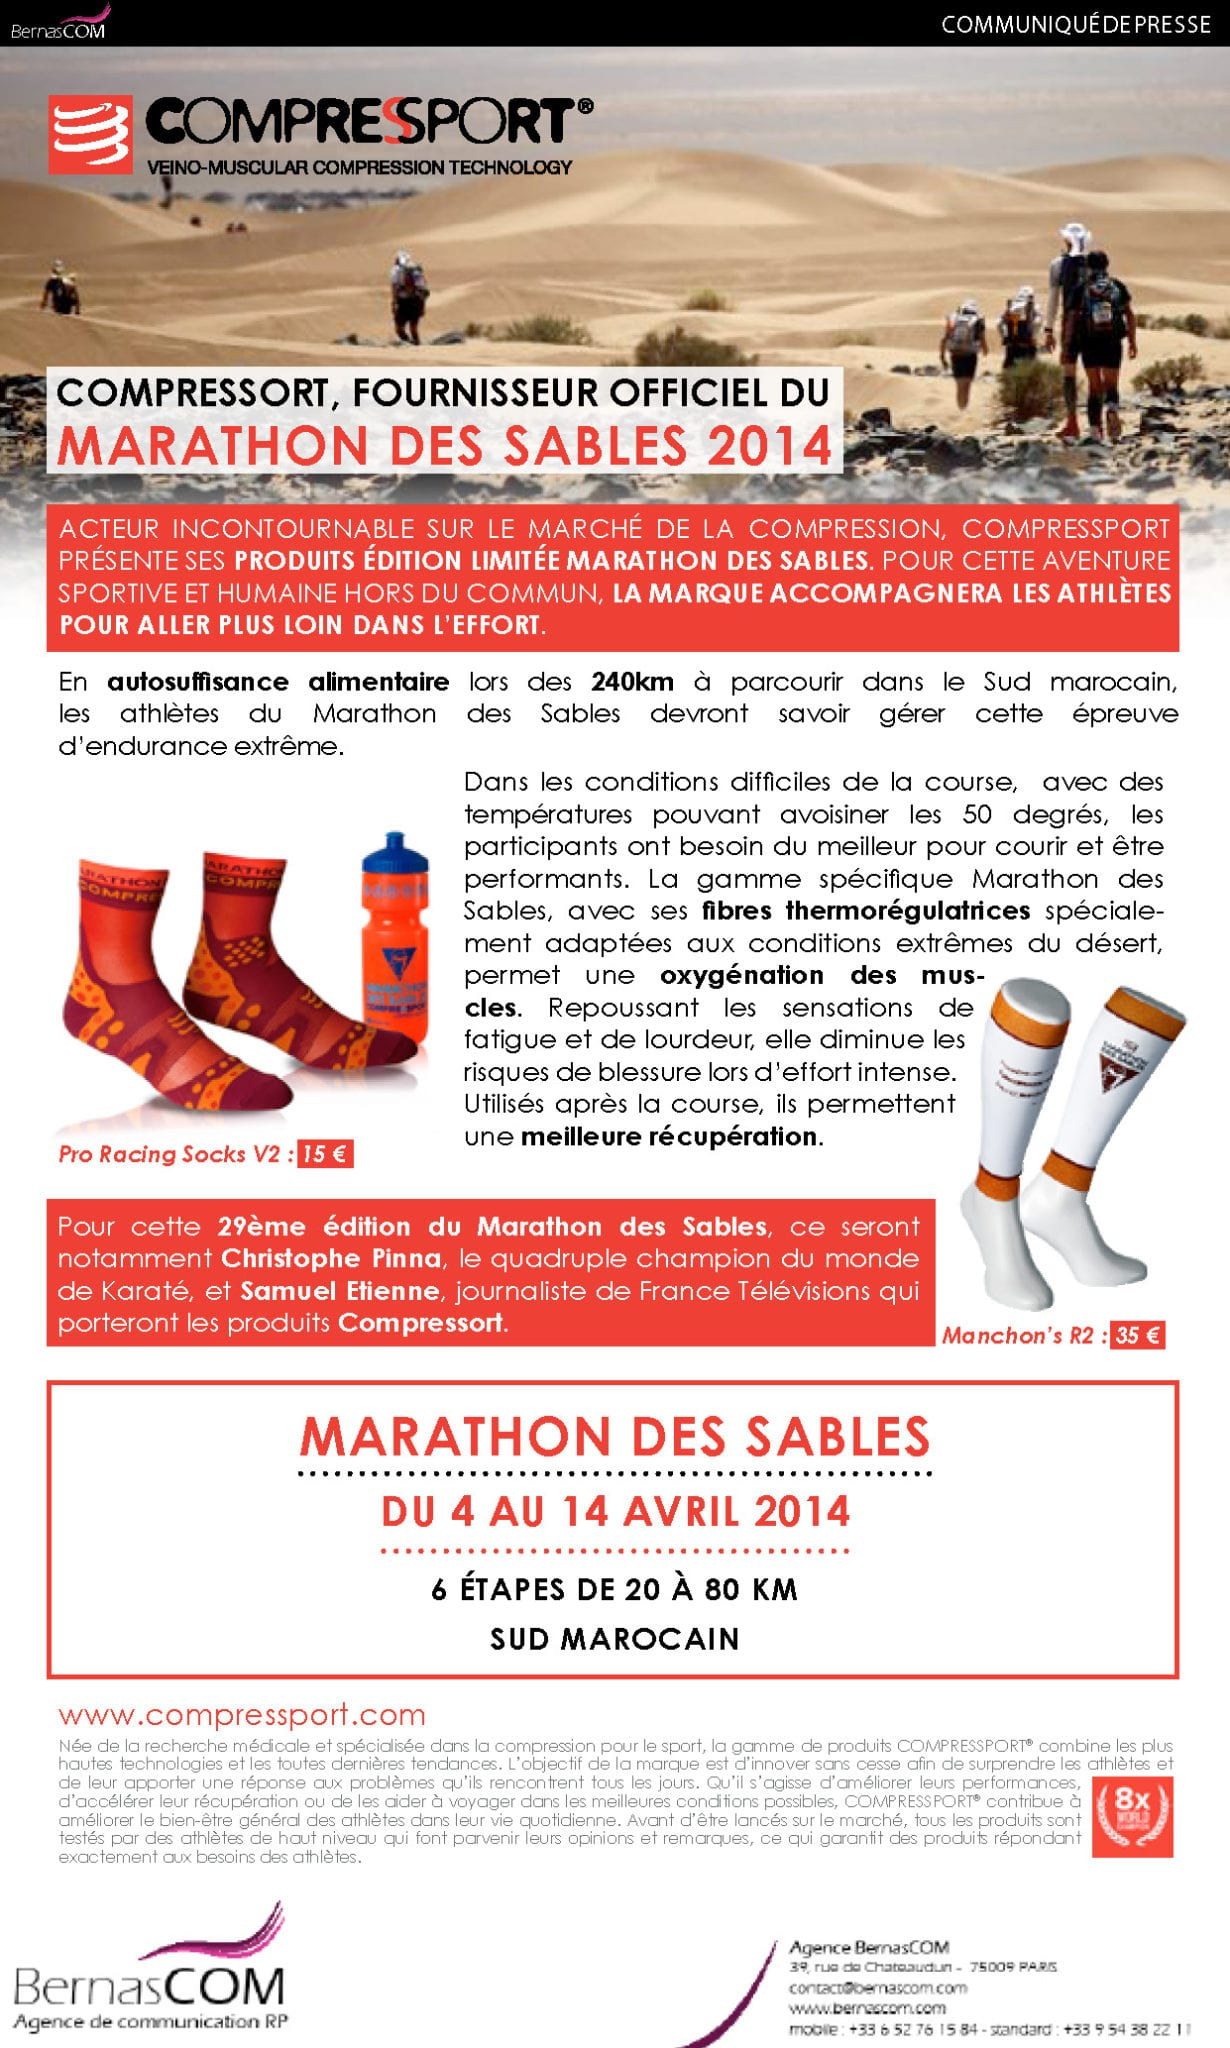 Compressport_CP_MarathonSables_mars14